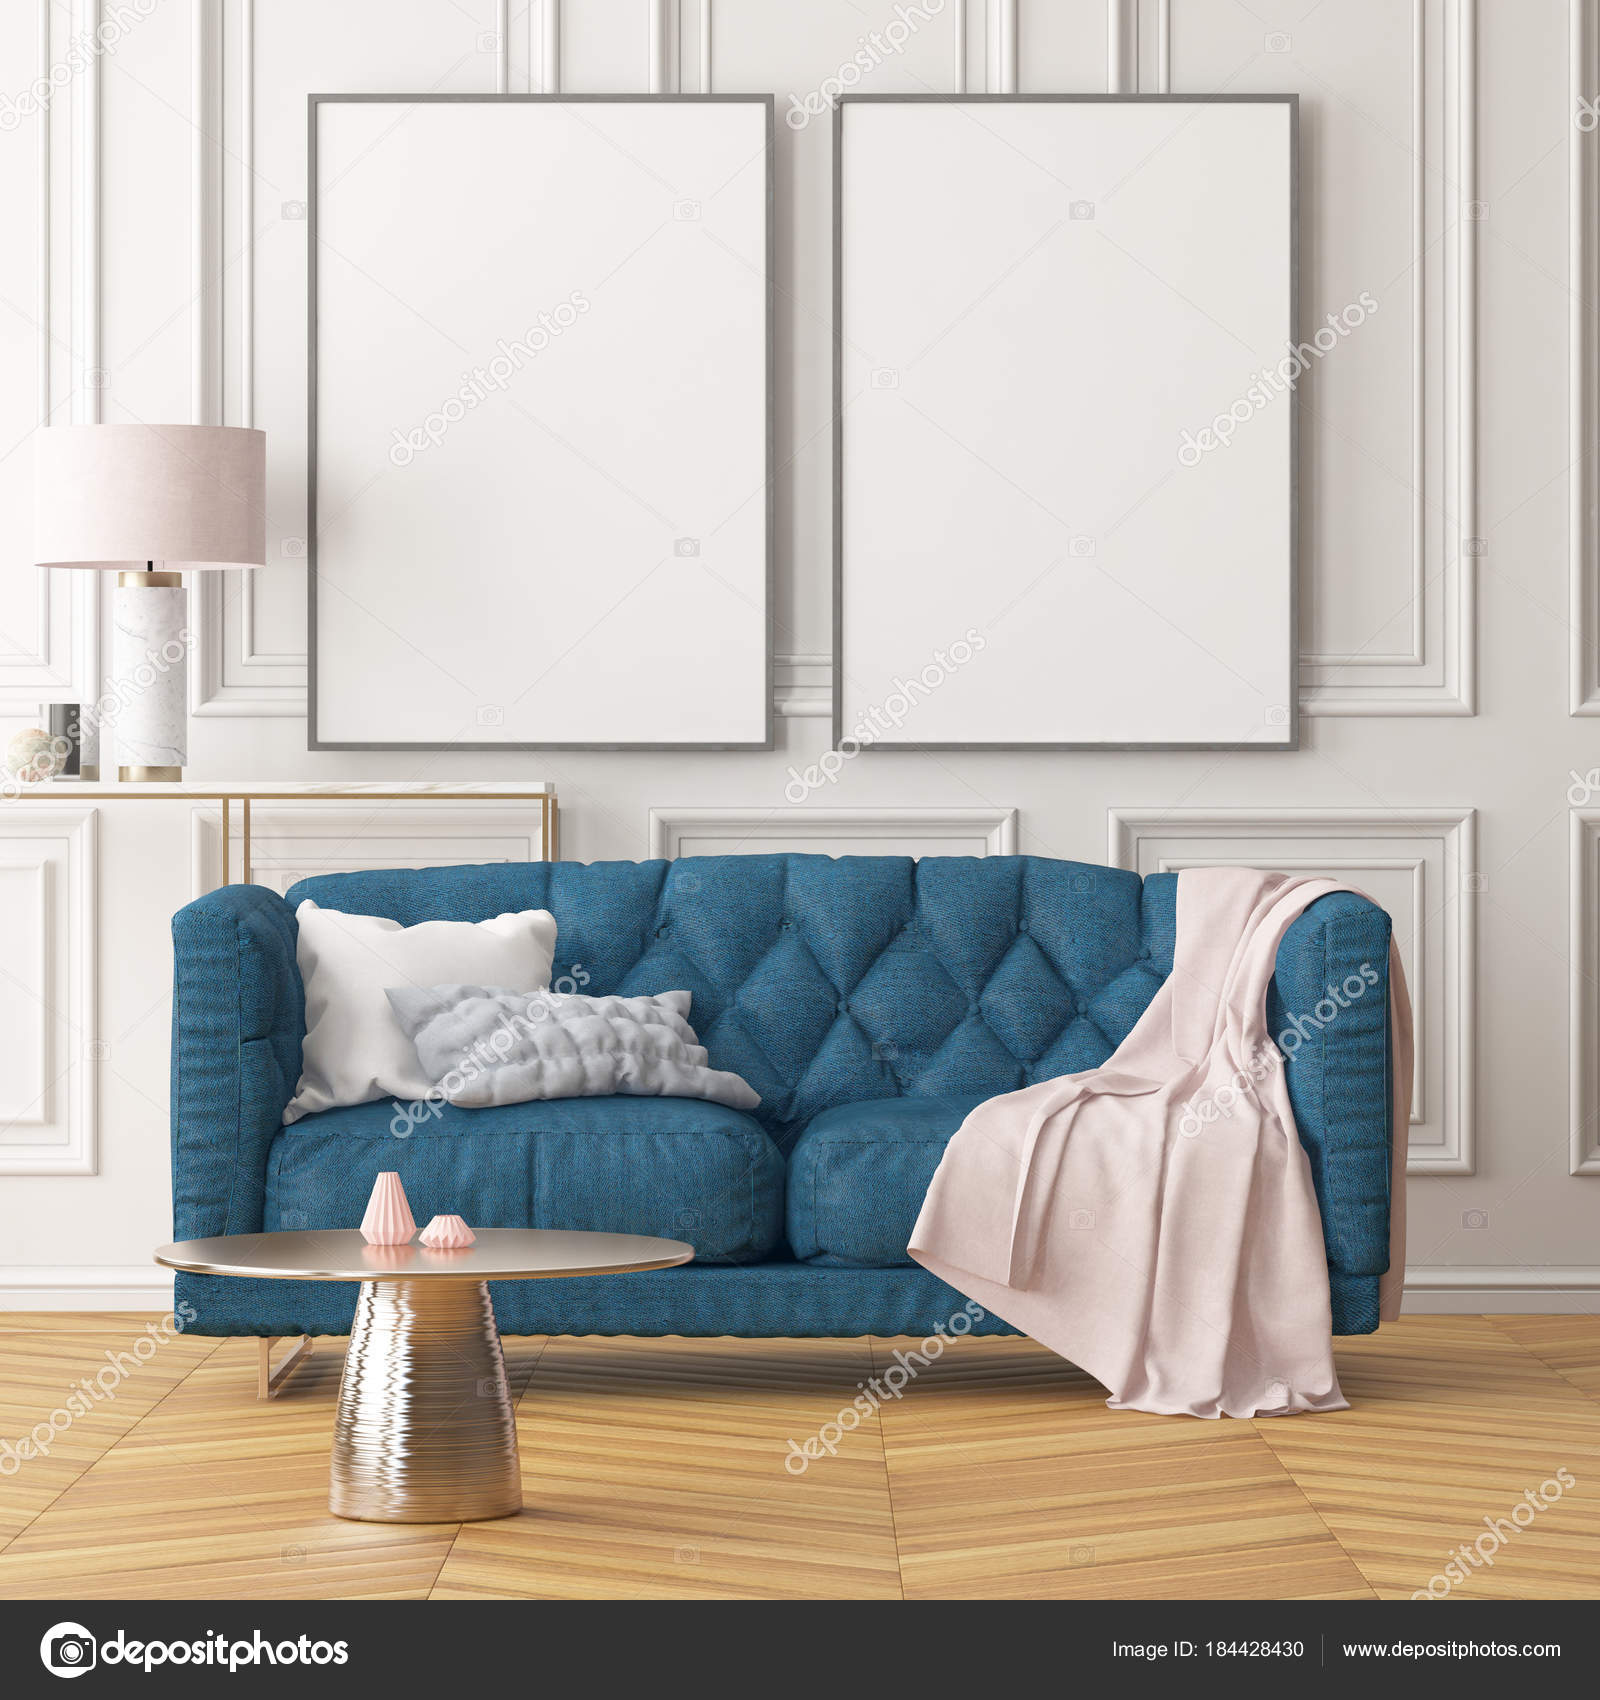 Living Room Modern Interior Blank Frames White Wall Blue Sofa ...